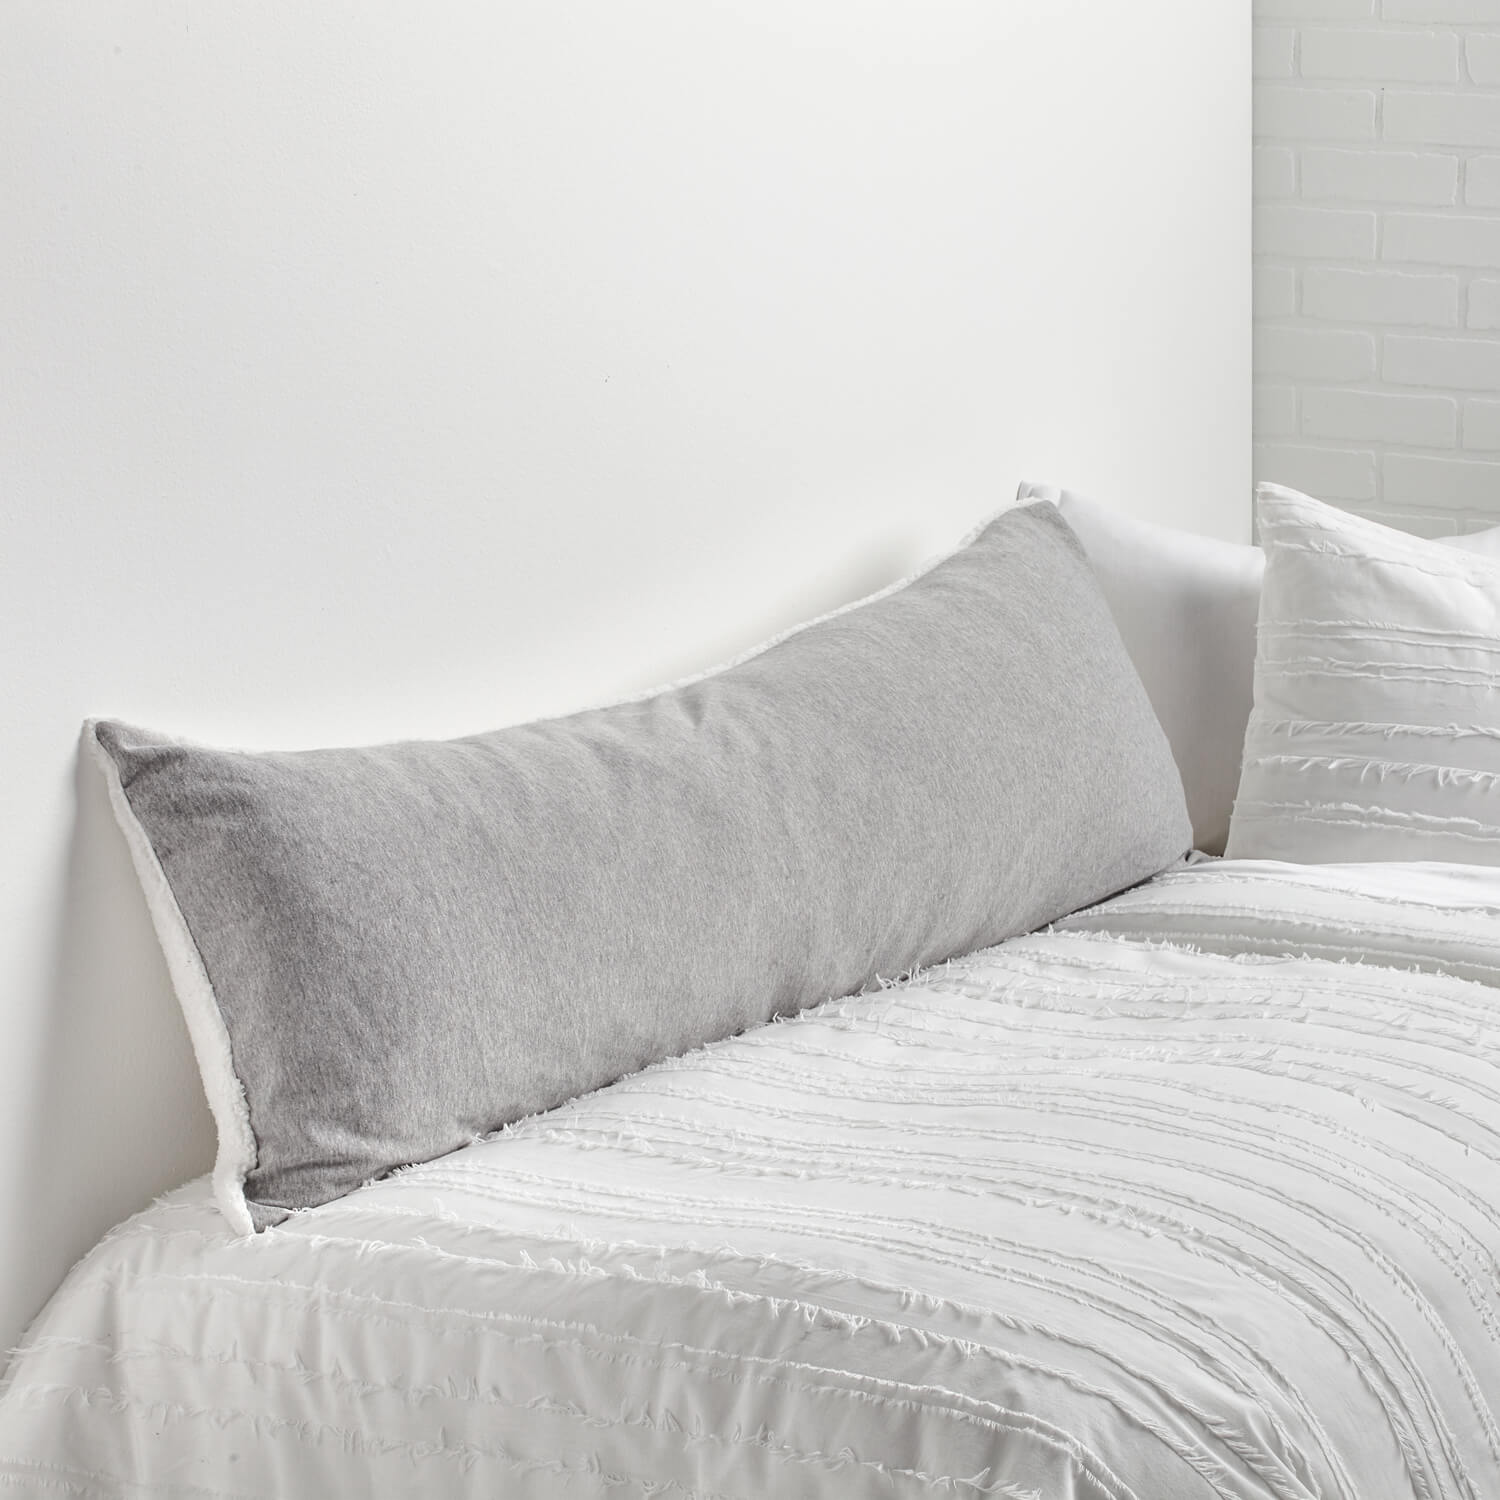 sweatshirt/sherpa body pillow cover | bedding